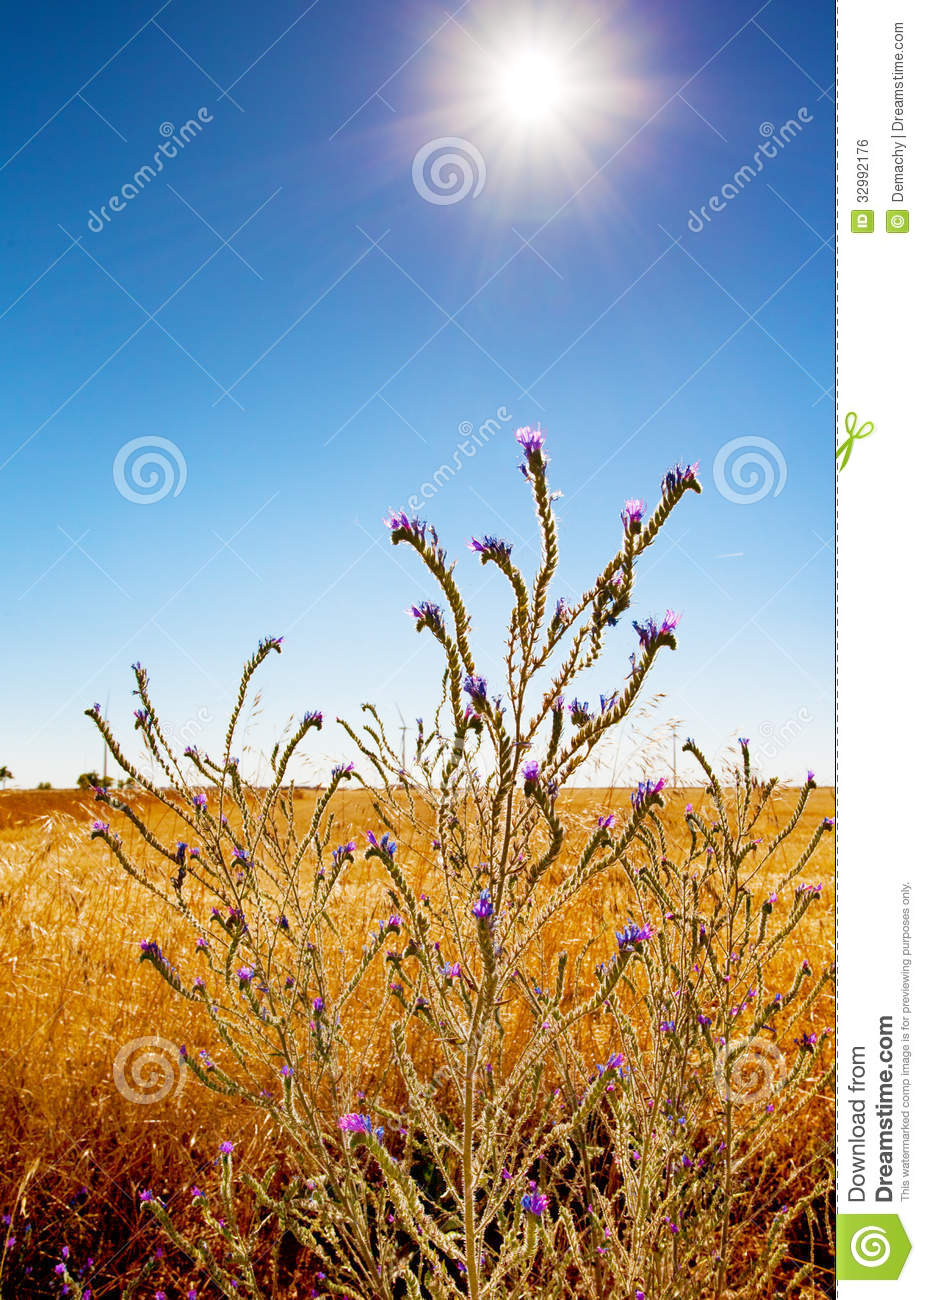 Wild plant looking fort sunlight to achieve photosynthesis.